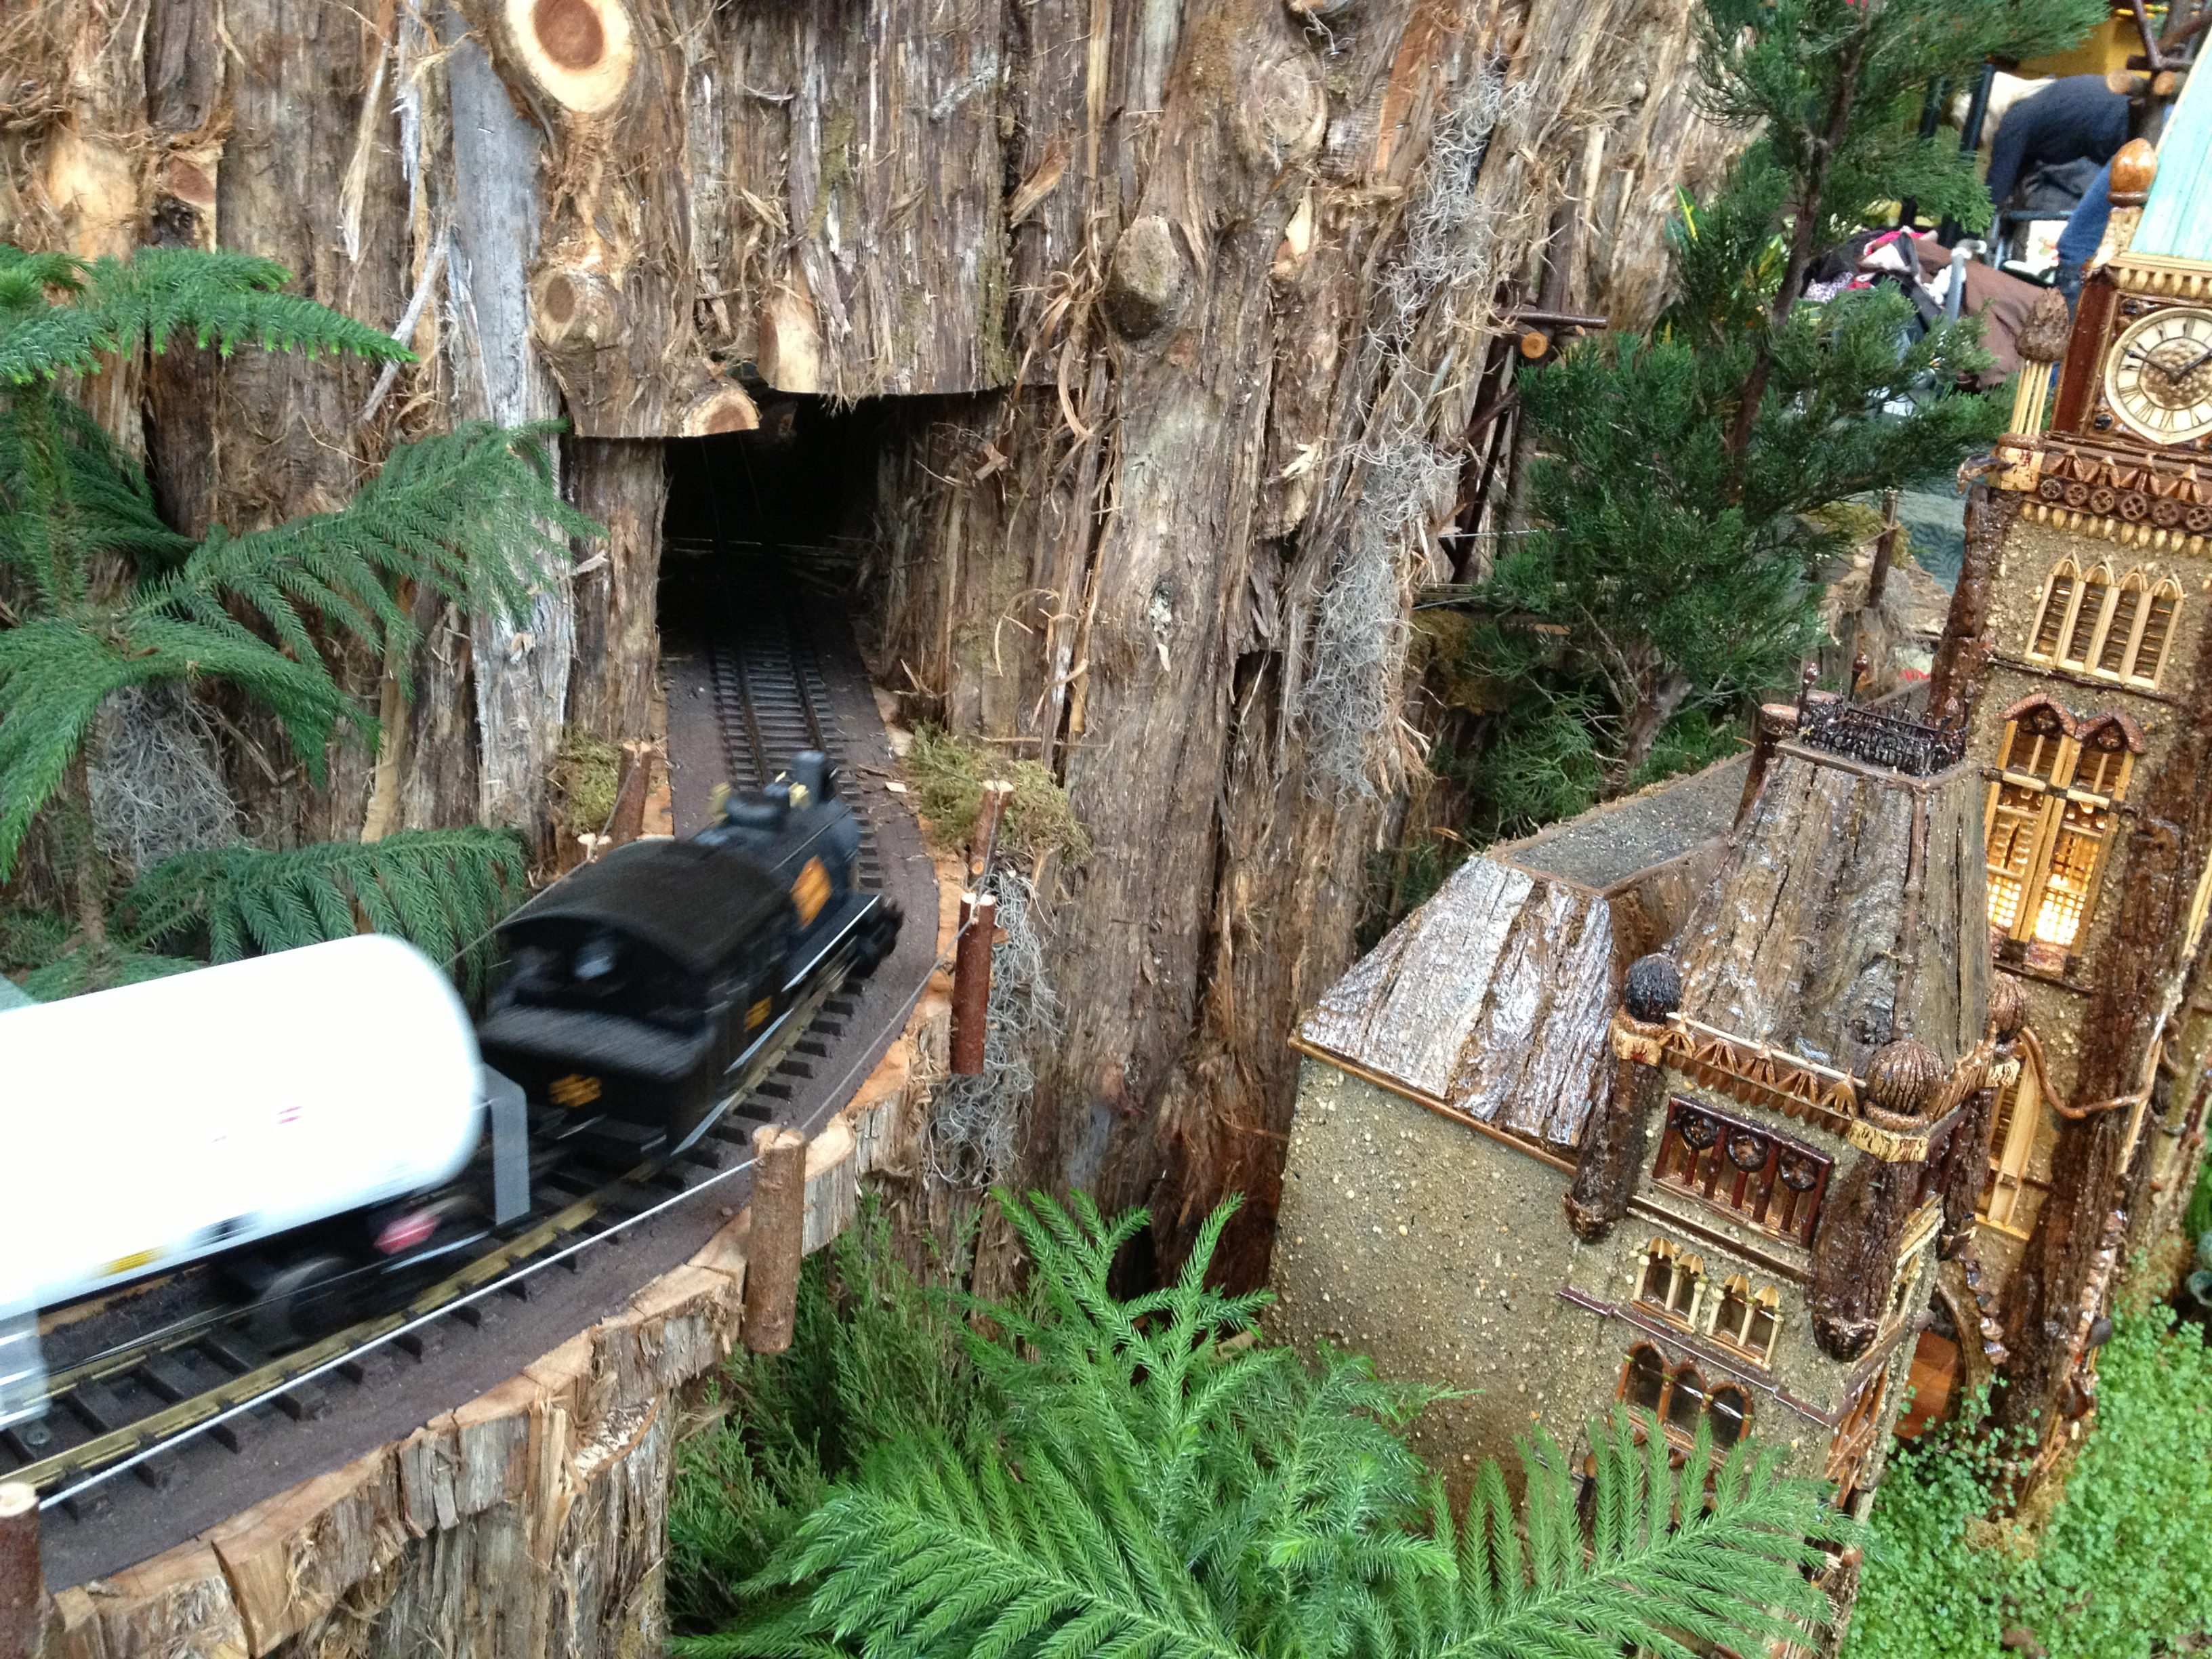 The RBG Train Show Is On Now Until January 6, 2013. Check It Out With Your  Family Over The Holidays, You Wonu0027t Be Disappointed.